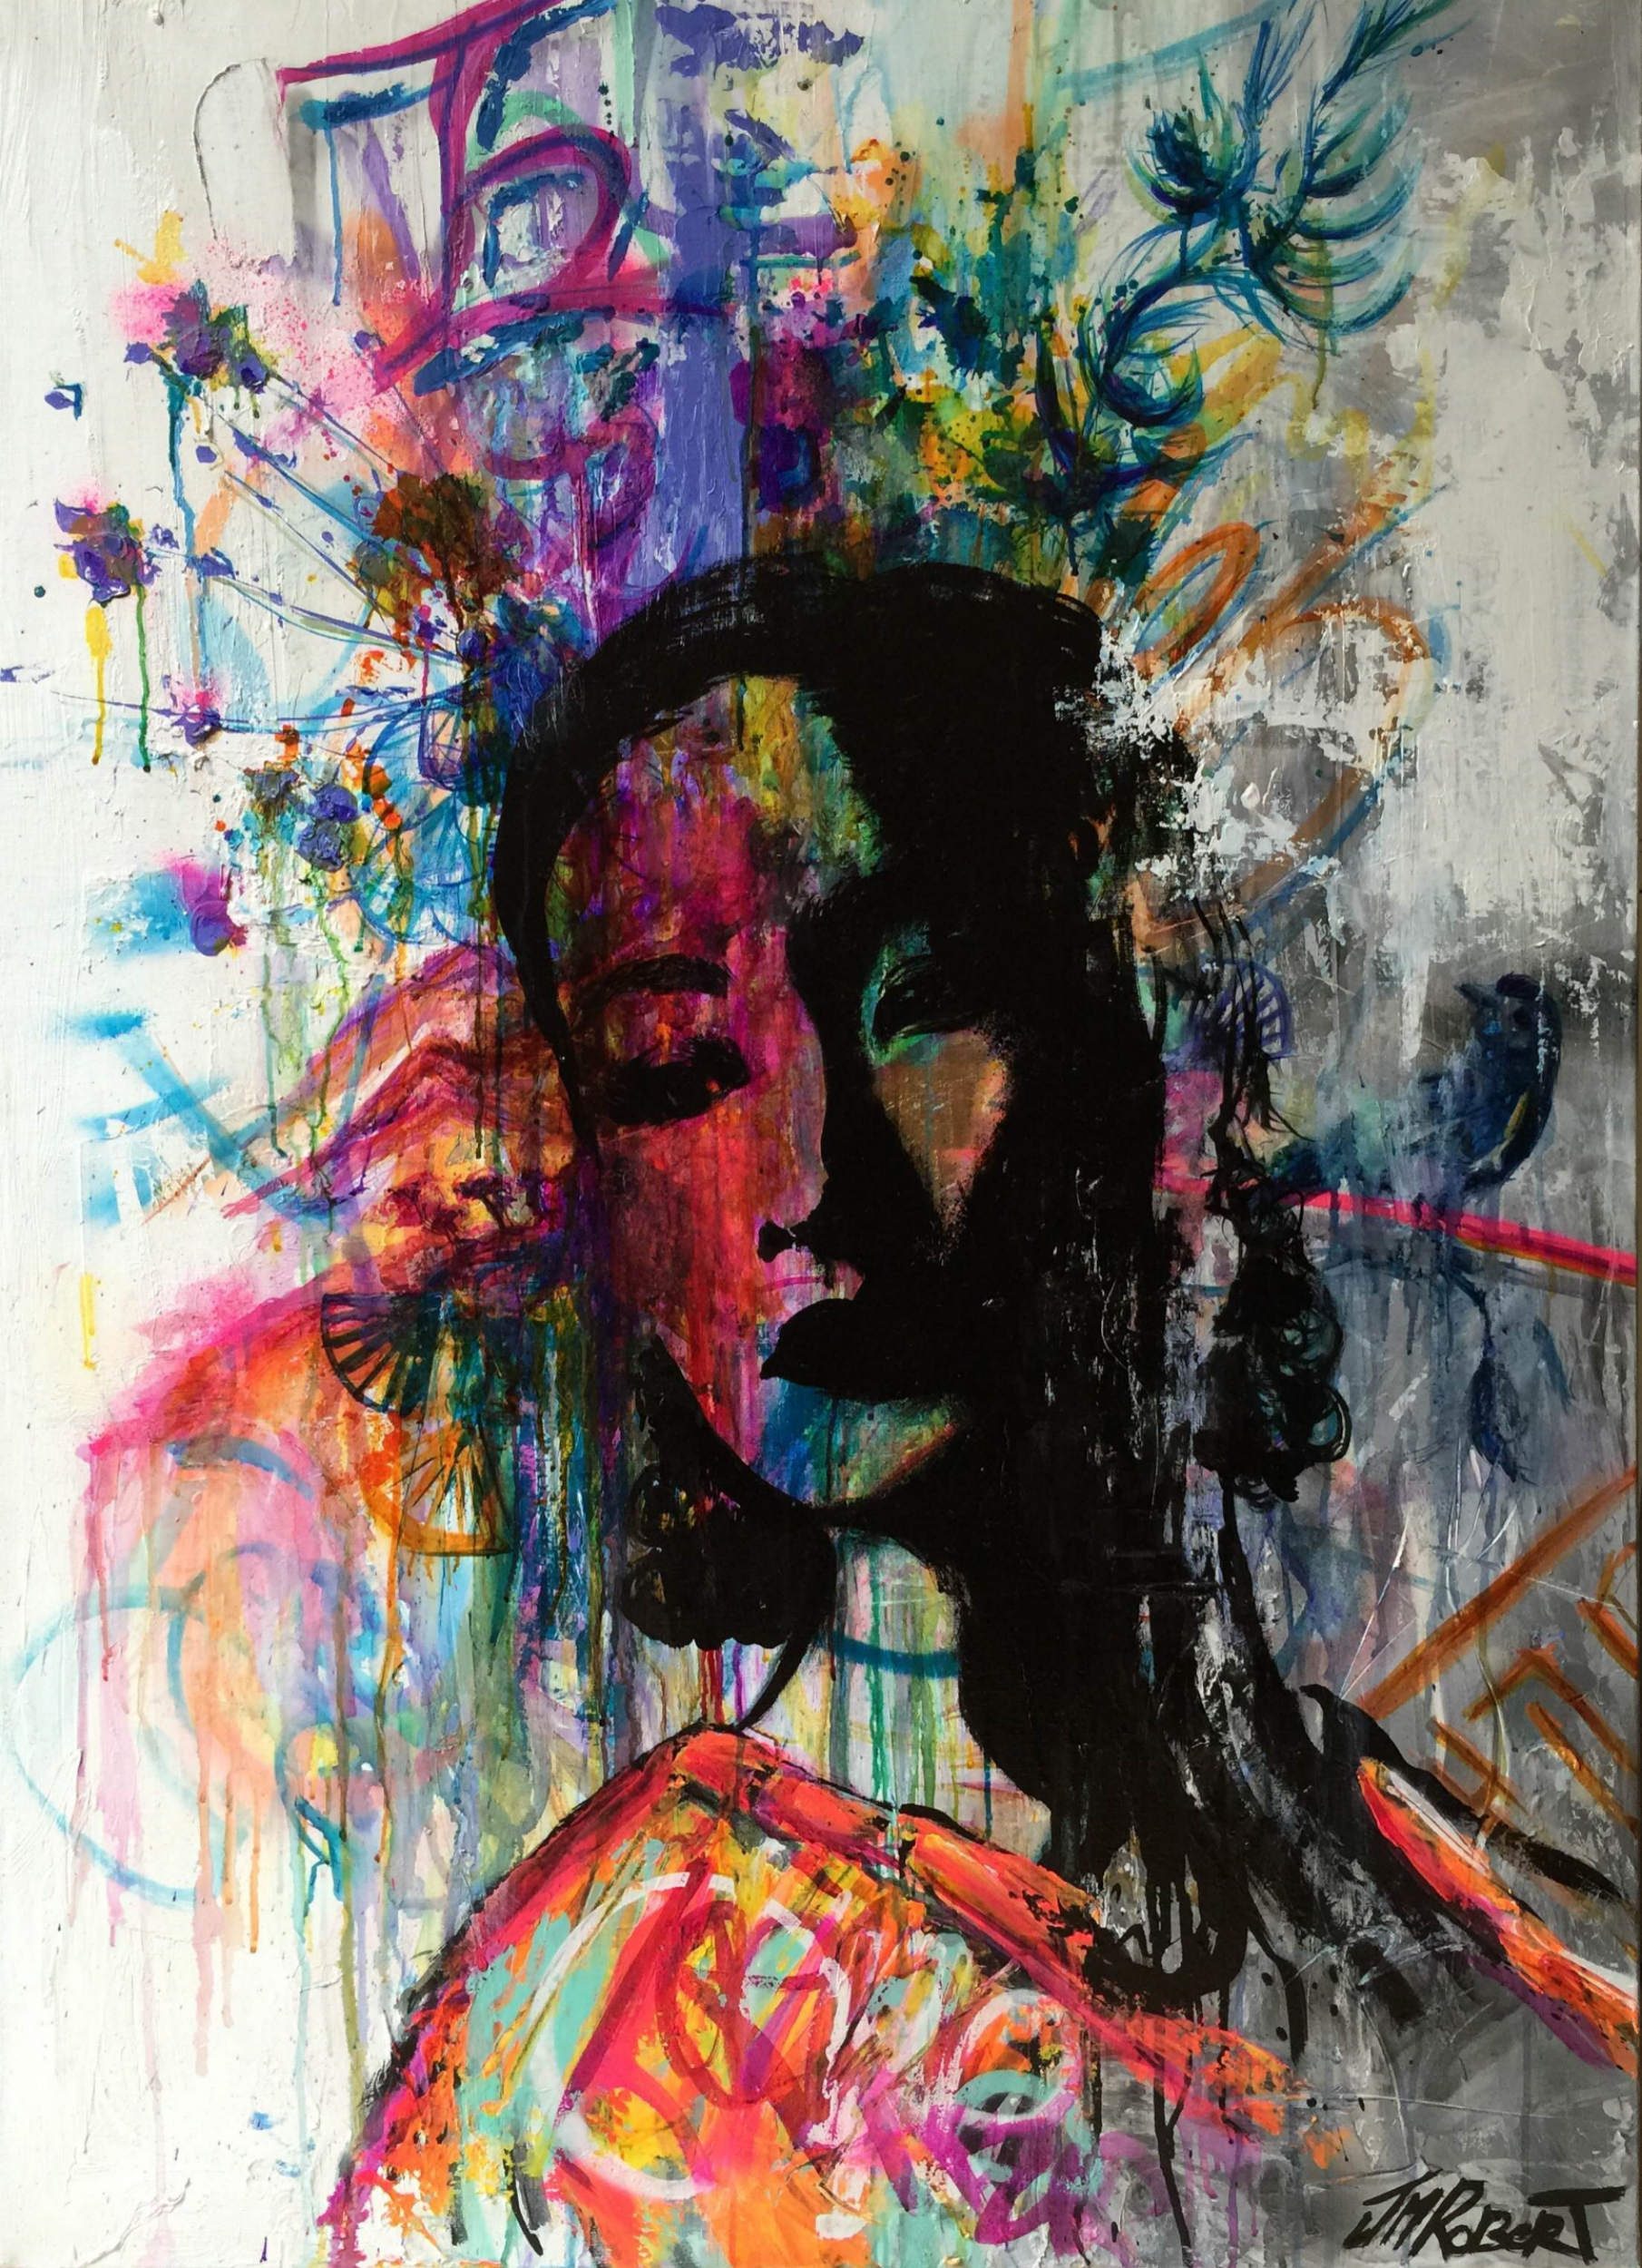 """Elle se souvient de son enface"" / ""She remembers her childhood"" Spray, Ink, Acrylic 116 x 81 cm 2015"